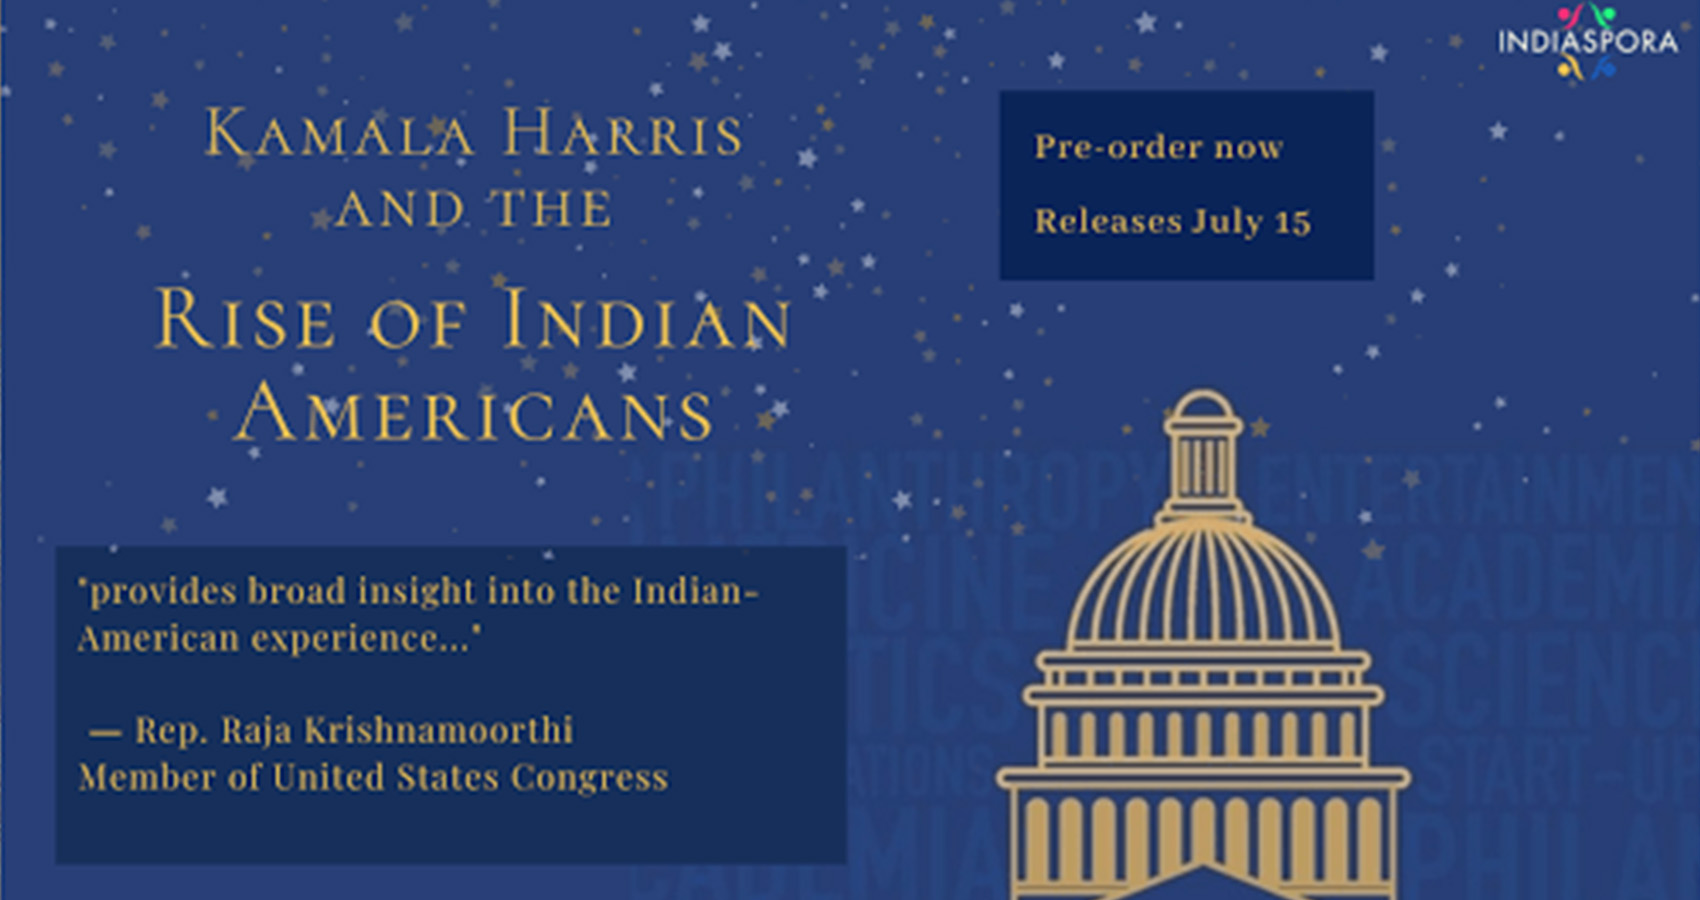 """Indiaspora Launches New Book, """"Kamala Harris And The Rise Of Indian-Americans"""""""